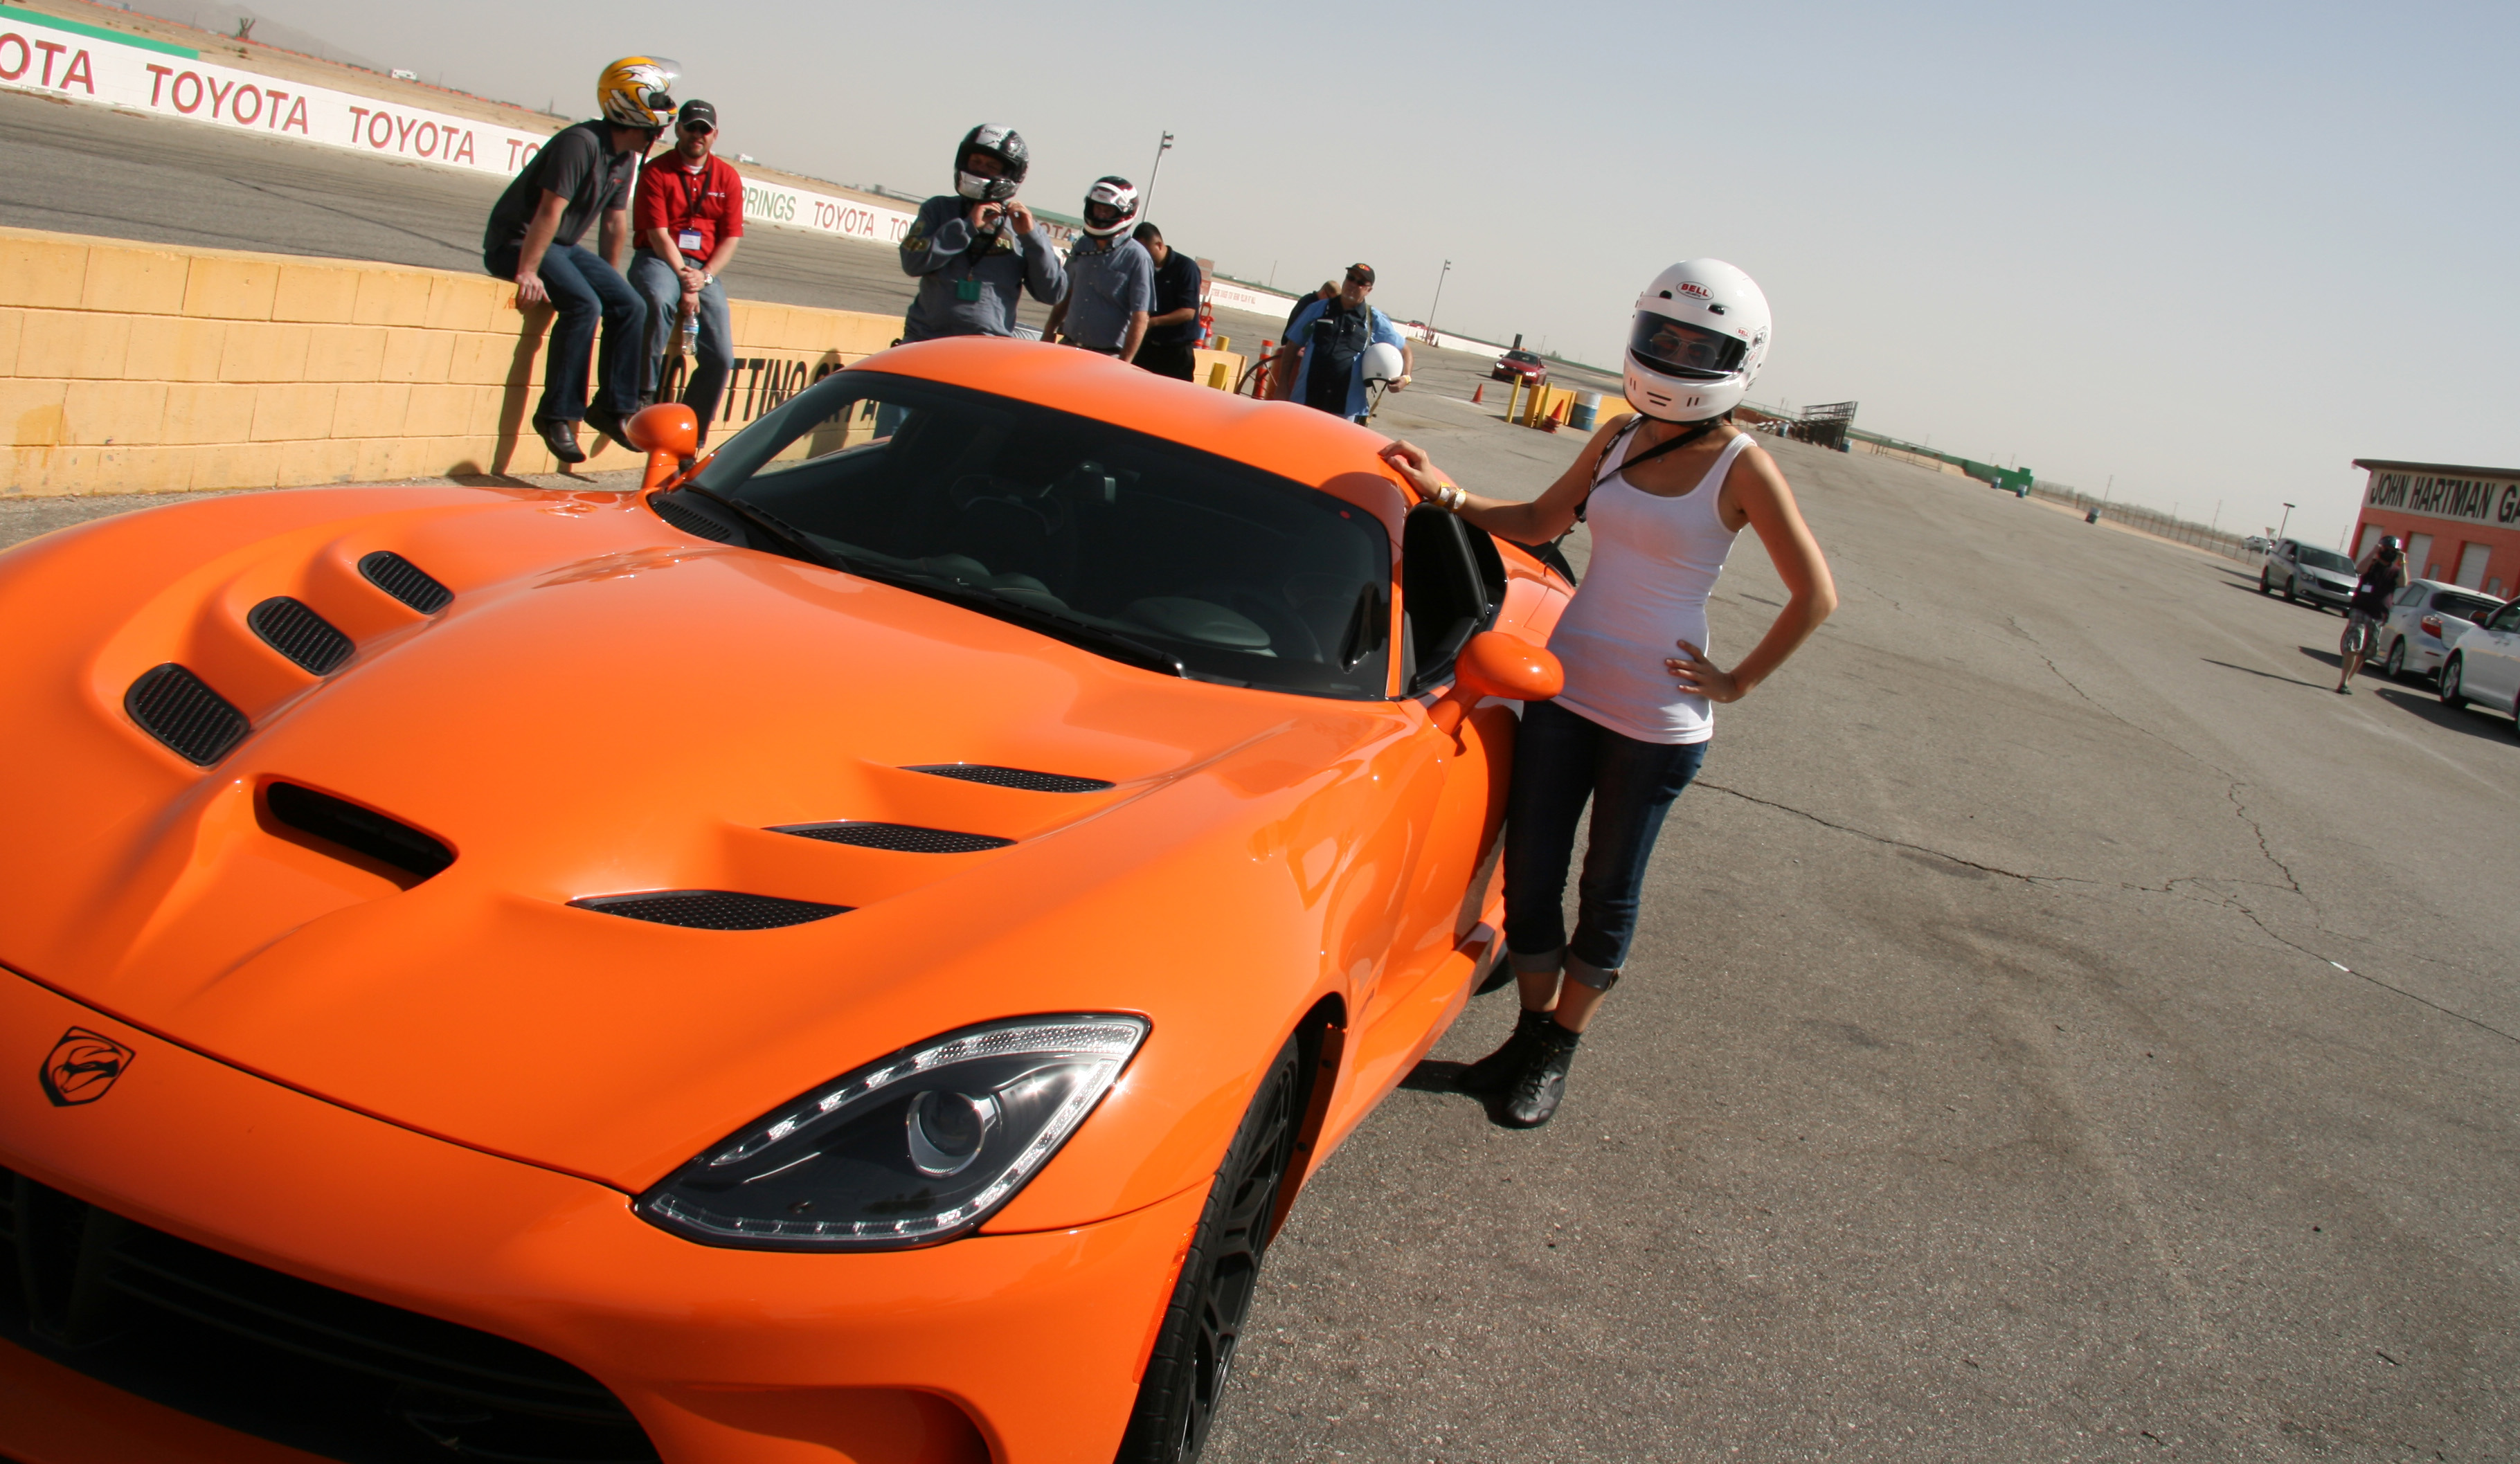 #MPGtrackdays Track Driving: Viper TA vs. Jaguar V6 S Coupe – Competing for the top spot